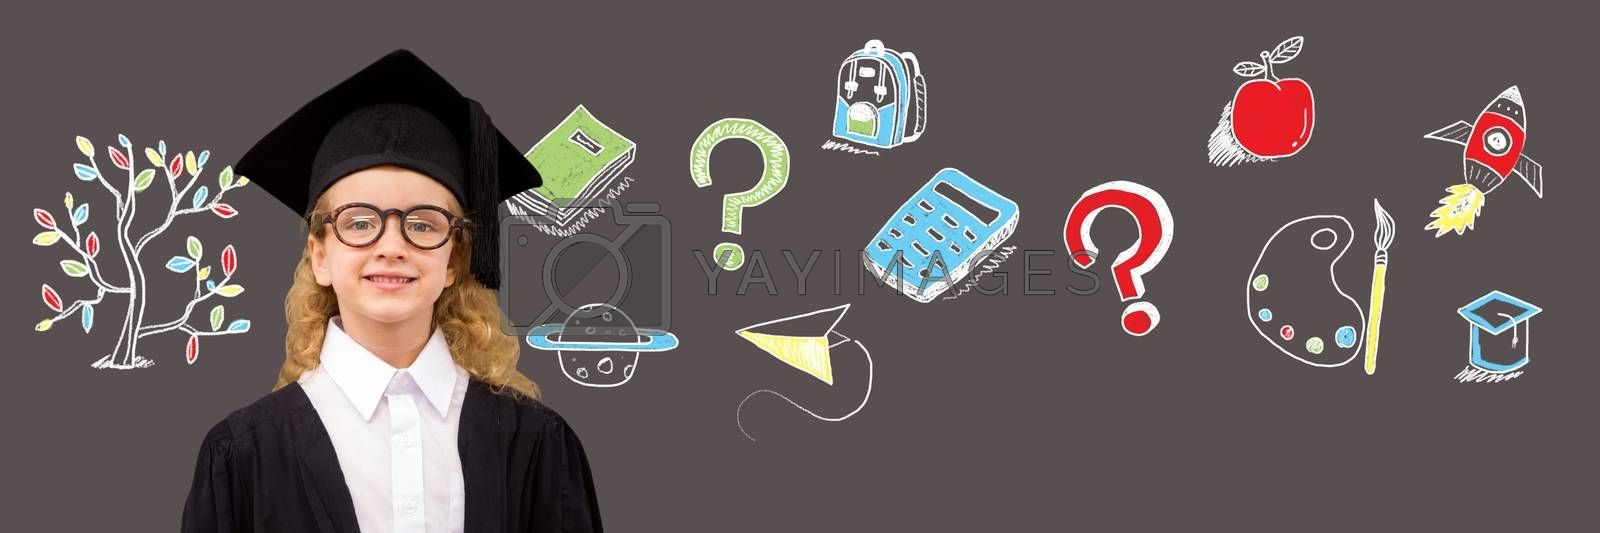 Digital composite of School girl and Education drawing on blackboard for school with tree